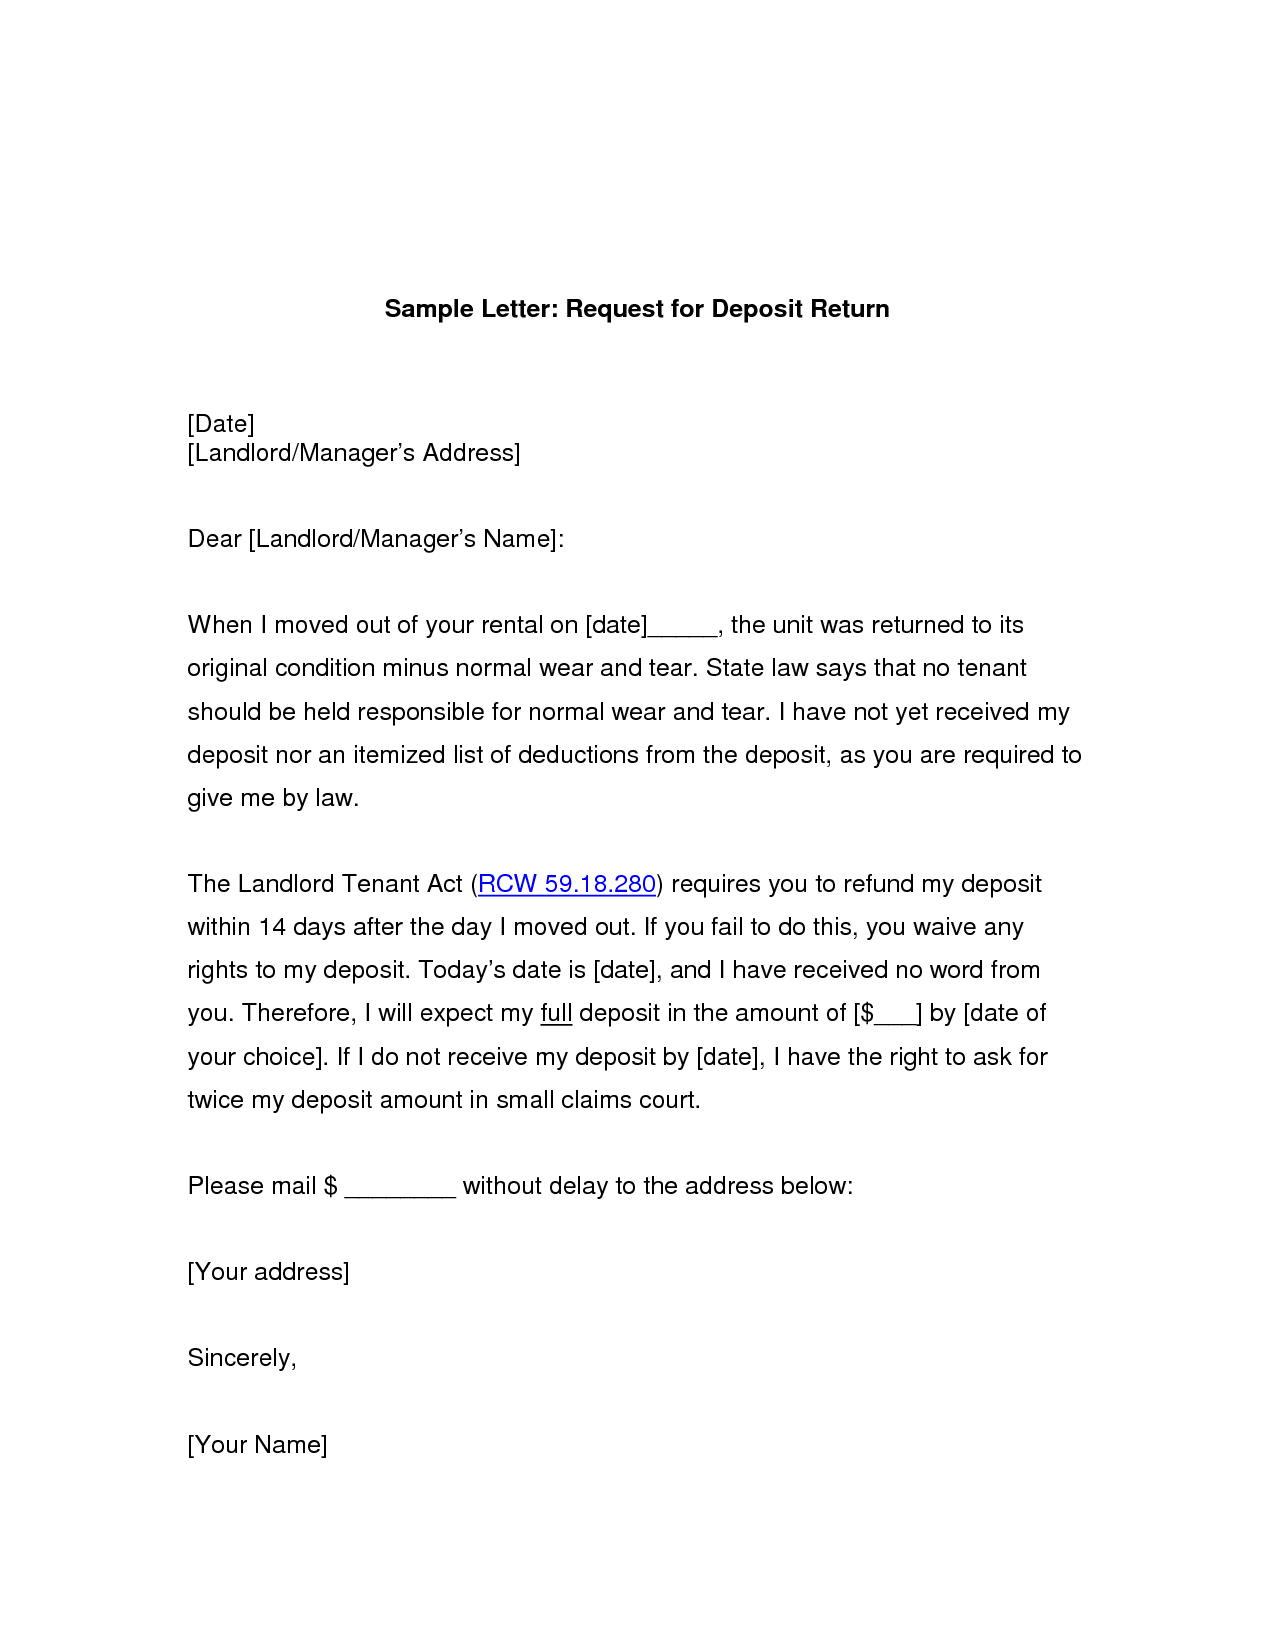 Refund request letter writing professional letters sample refund request letter writing professional letters sample insurance claim denial and spiritdancerdesigns Gallery